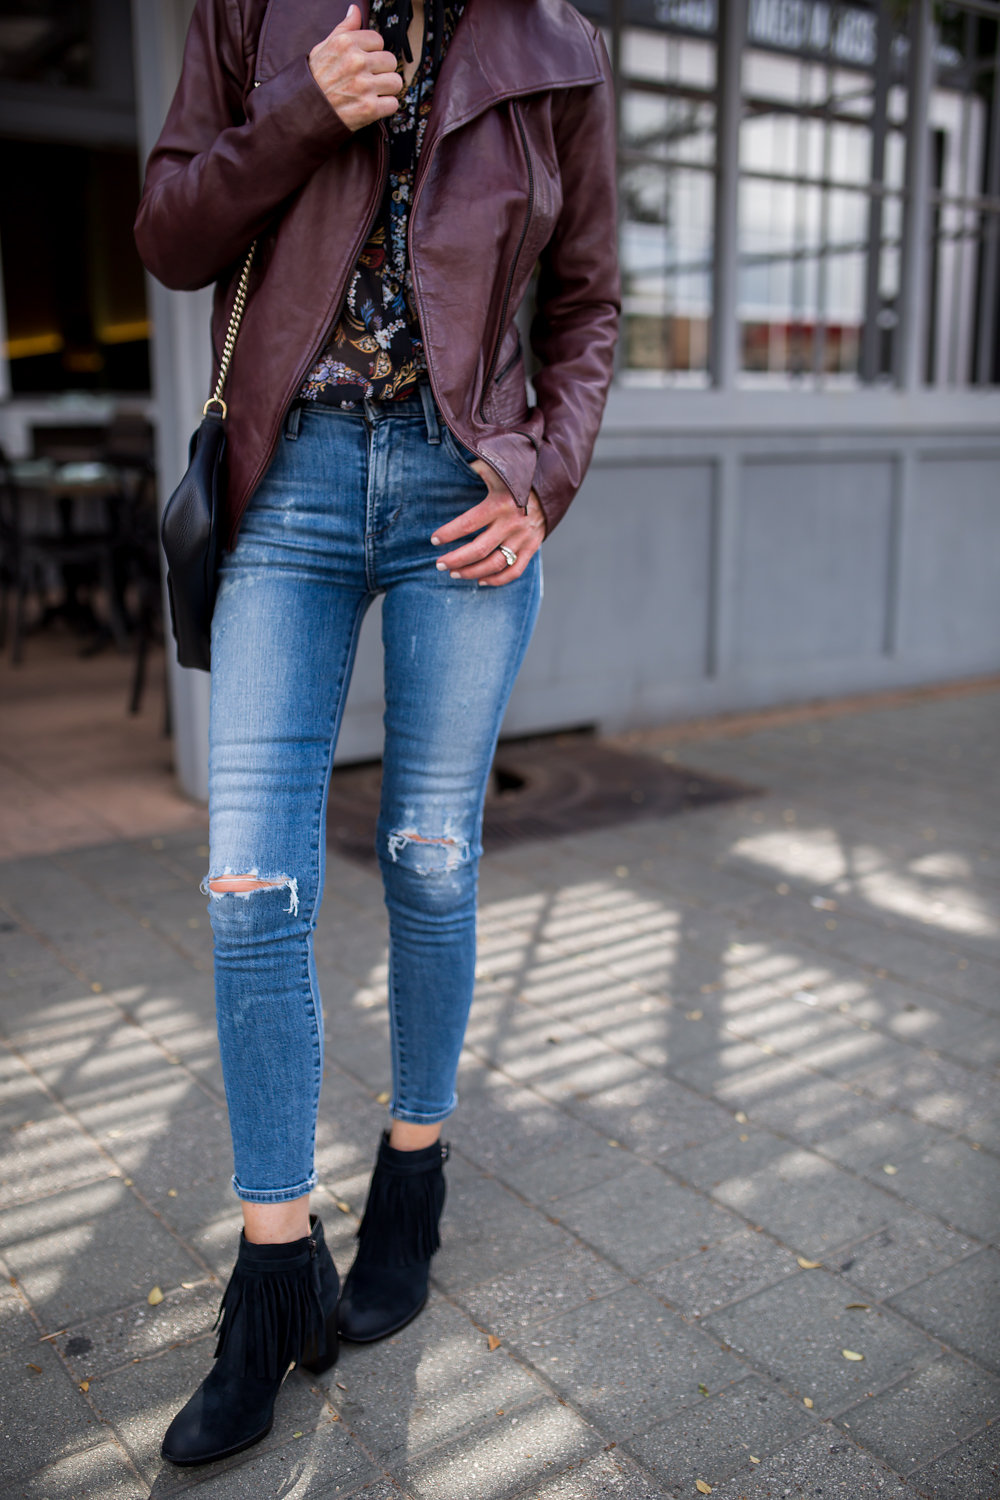 BERNARDO LEATHER JACKET- NATURALIZER SUEDE BOOTIE- DALLAS FASHION BLOGGER